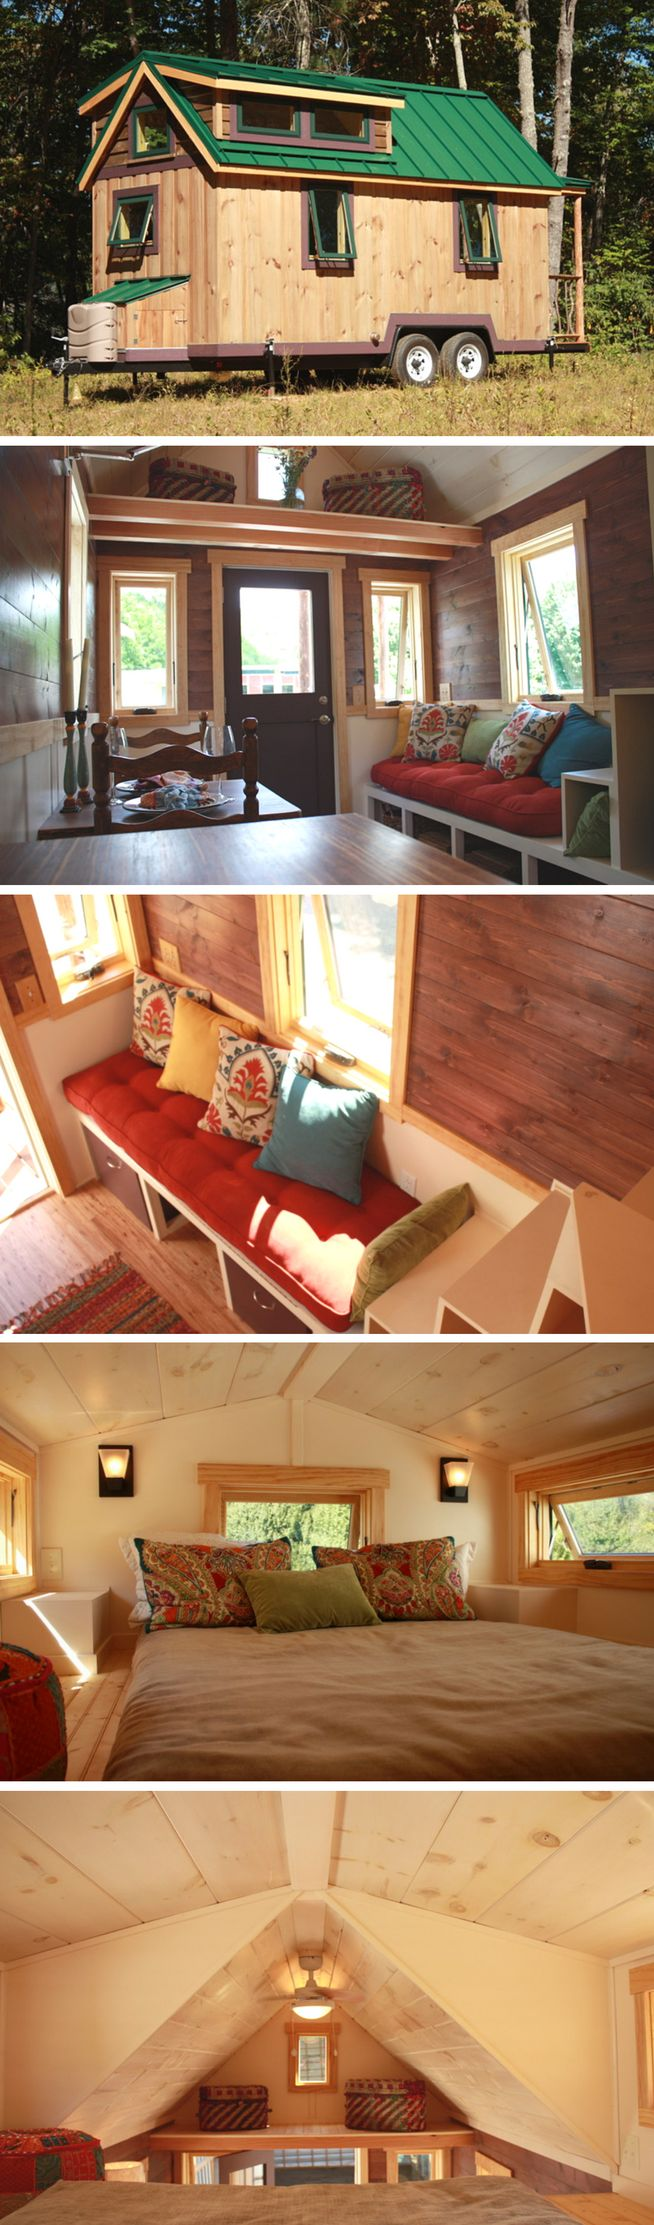 The FitNest: a tiny house designed and built by Blue Ridge Tiny Homes for a couple who wanted a home to work out in. The home comes with a variety of workout equipment to help the couple stay in shape!